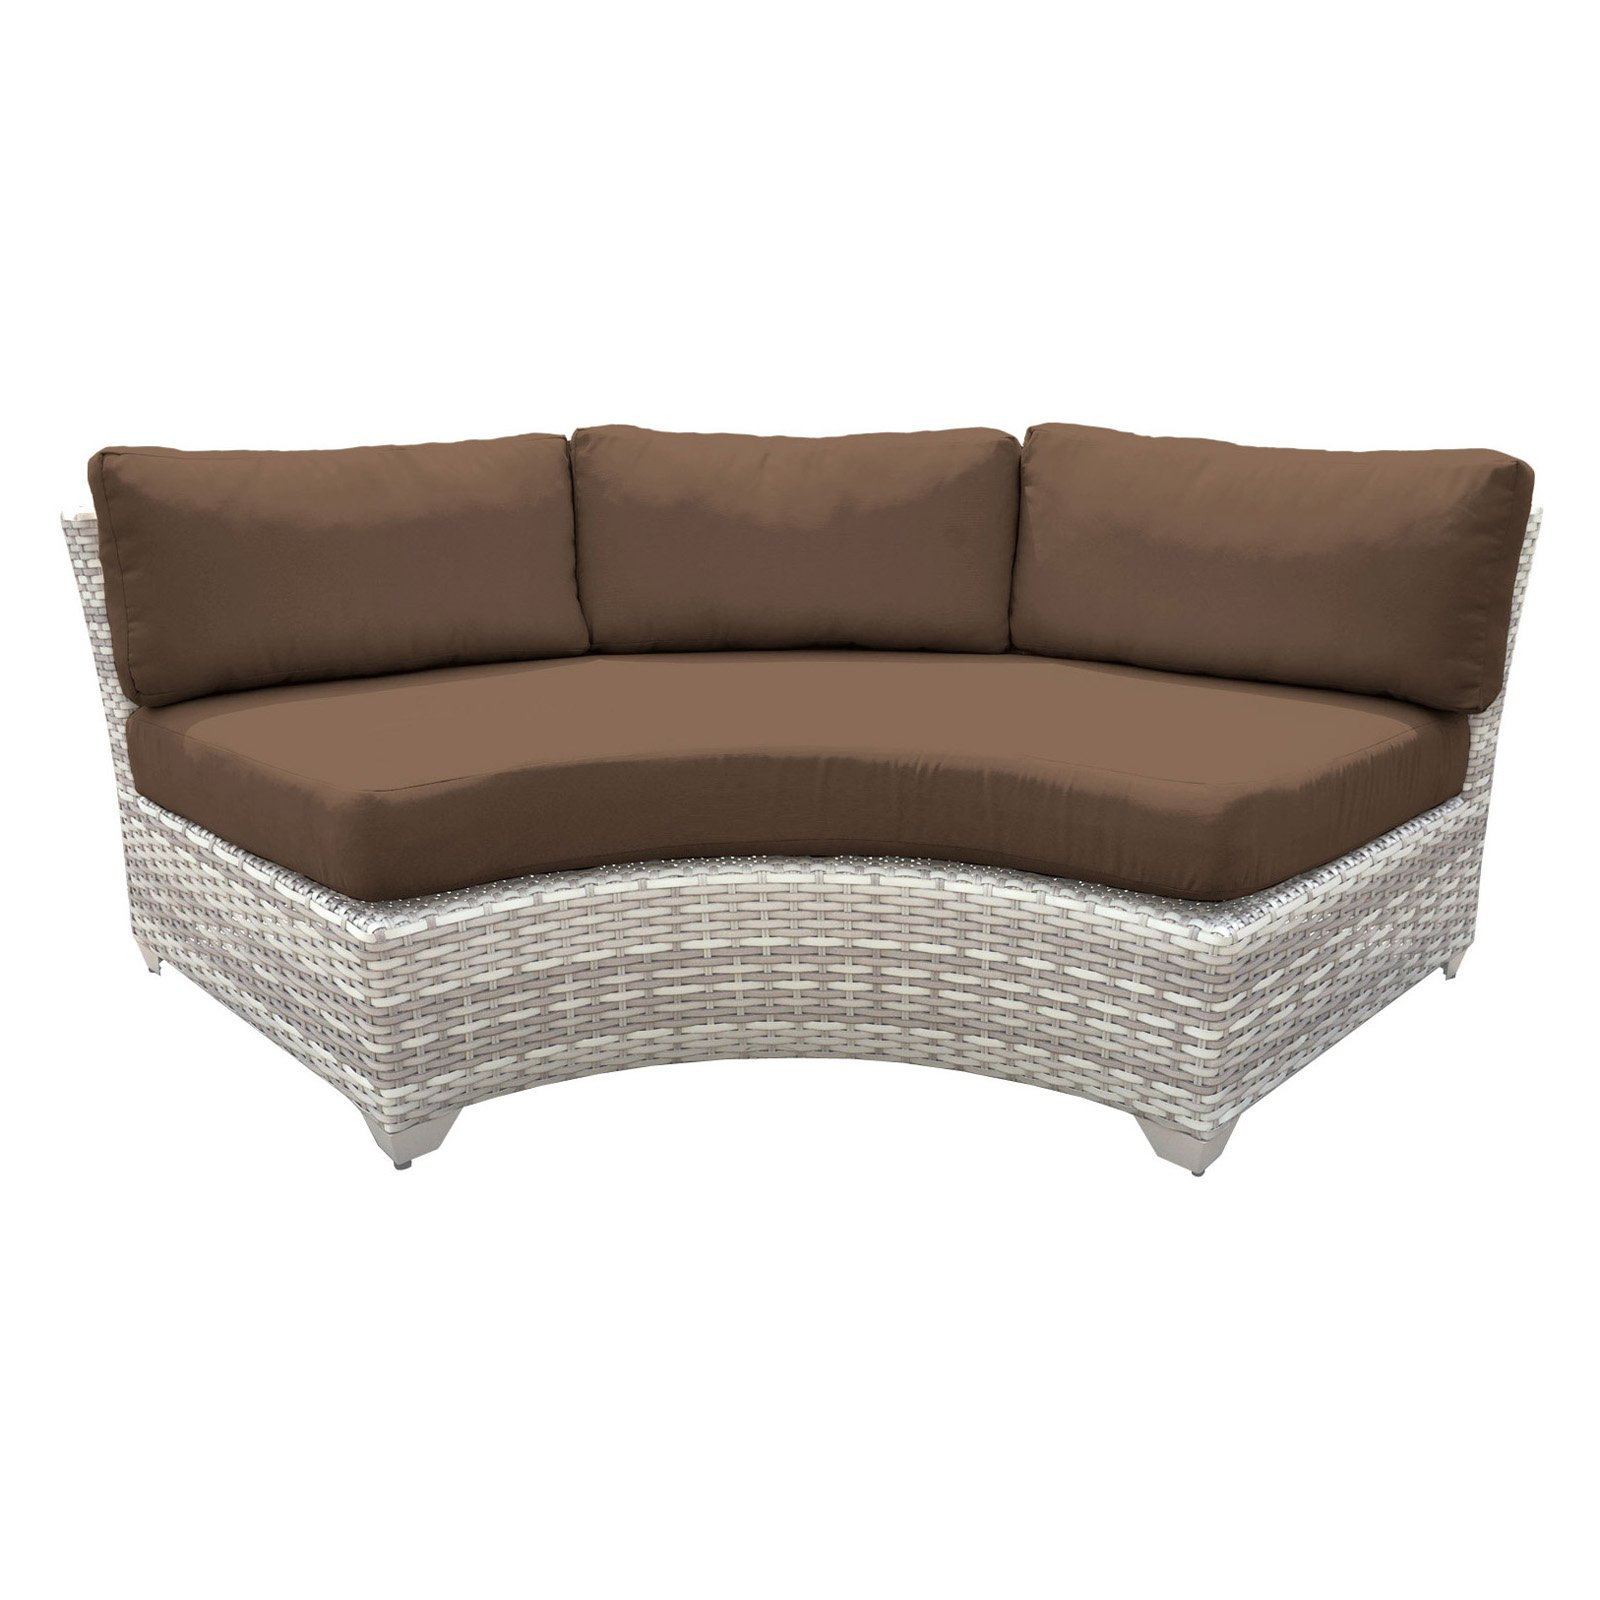 Newest Waterbury Curved Armless Sofa With Cushions Regarding Tk Classics Outdoor Wicker Curved Armless Sofa Sectional (View 6 of 20)